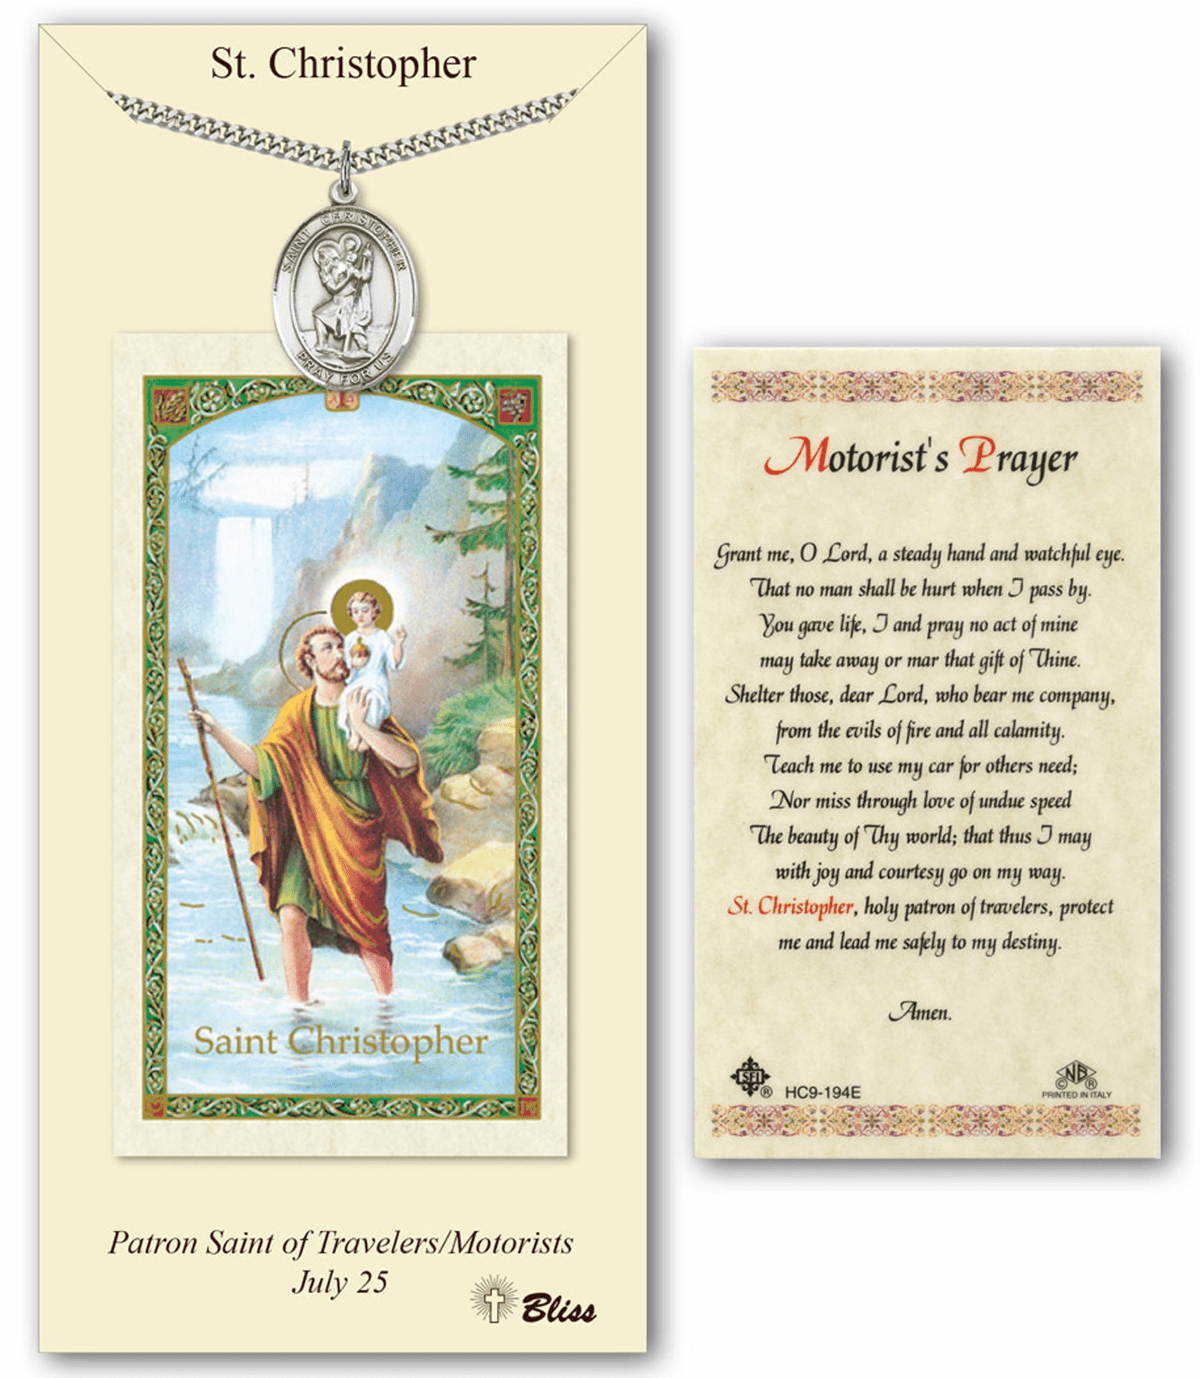 Bliss Mfg St Christopher Prayer Card & Pendant Gift Set